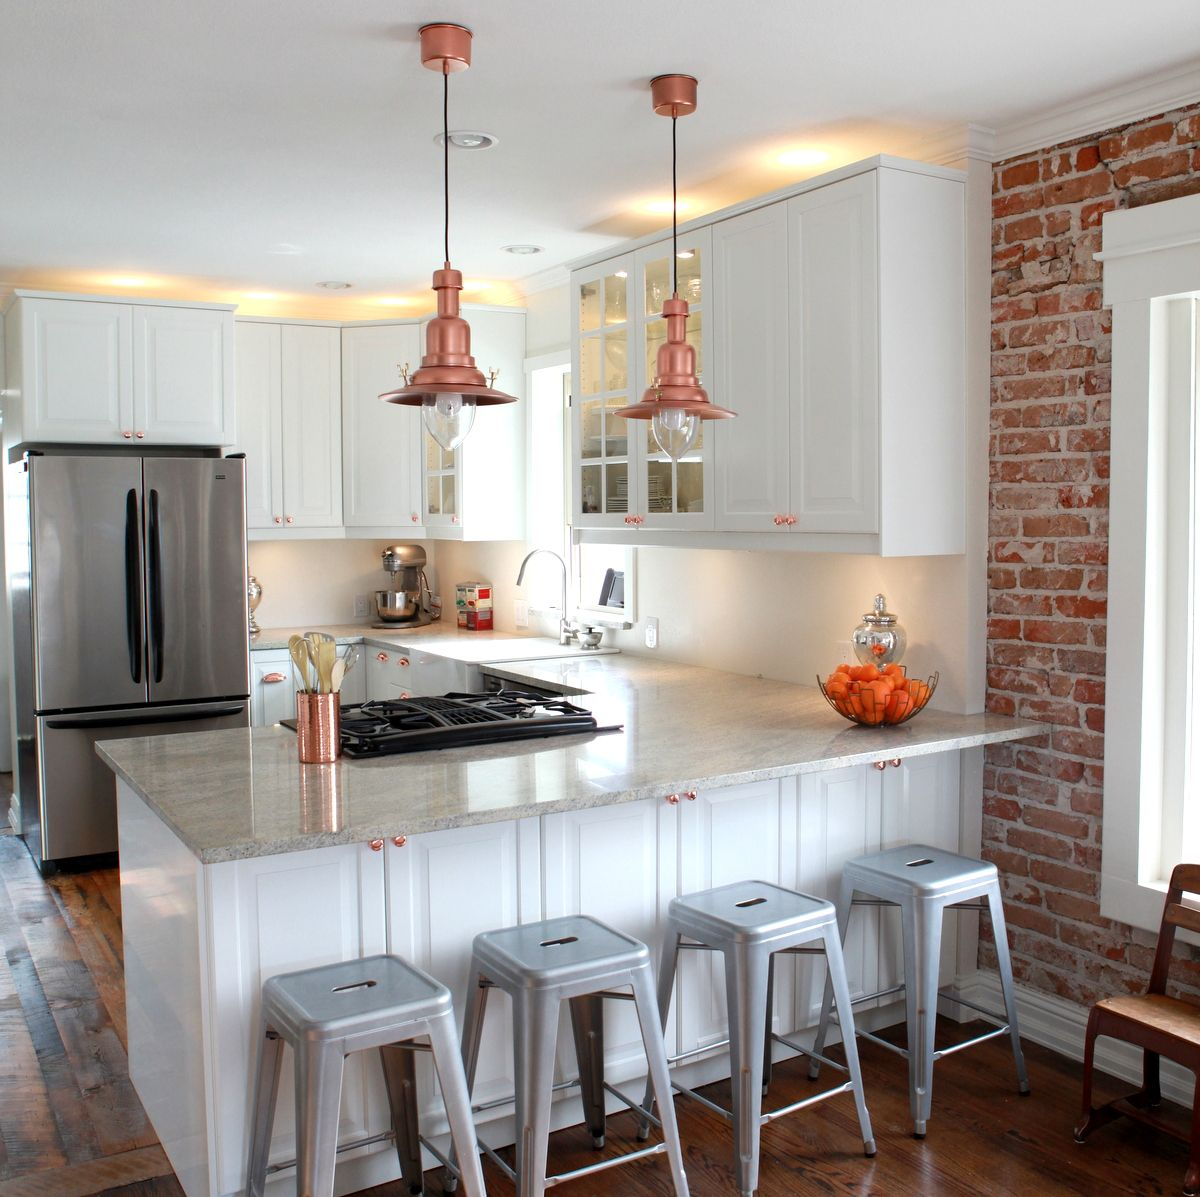 9 IKEA Makeovers That Look Shockingly Luxe  Ikea hack kitchen